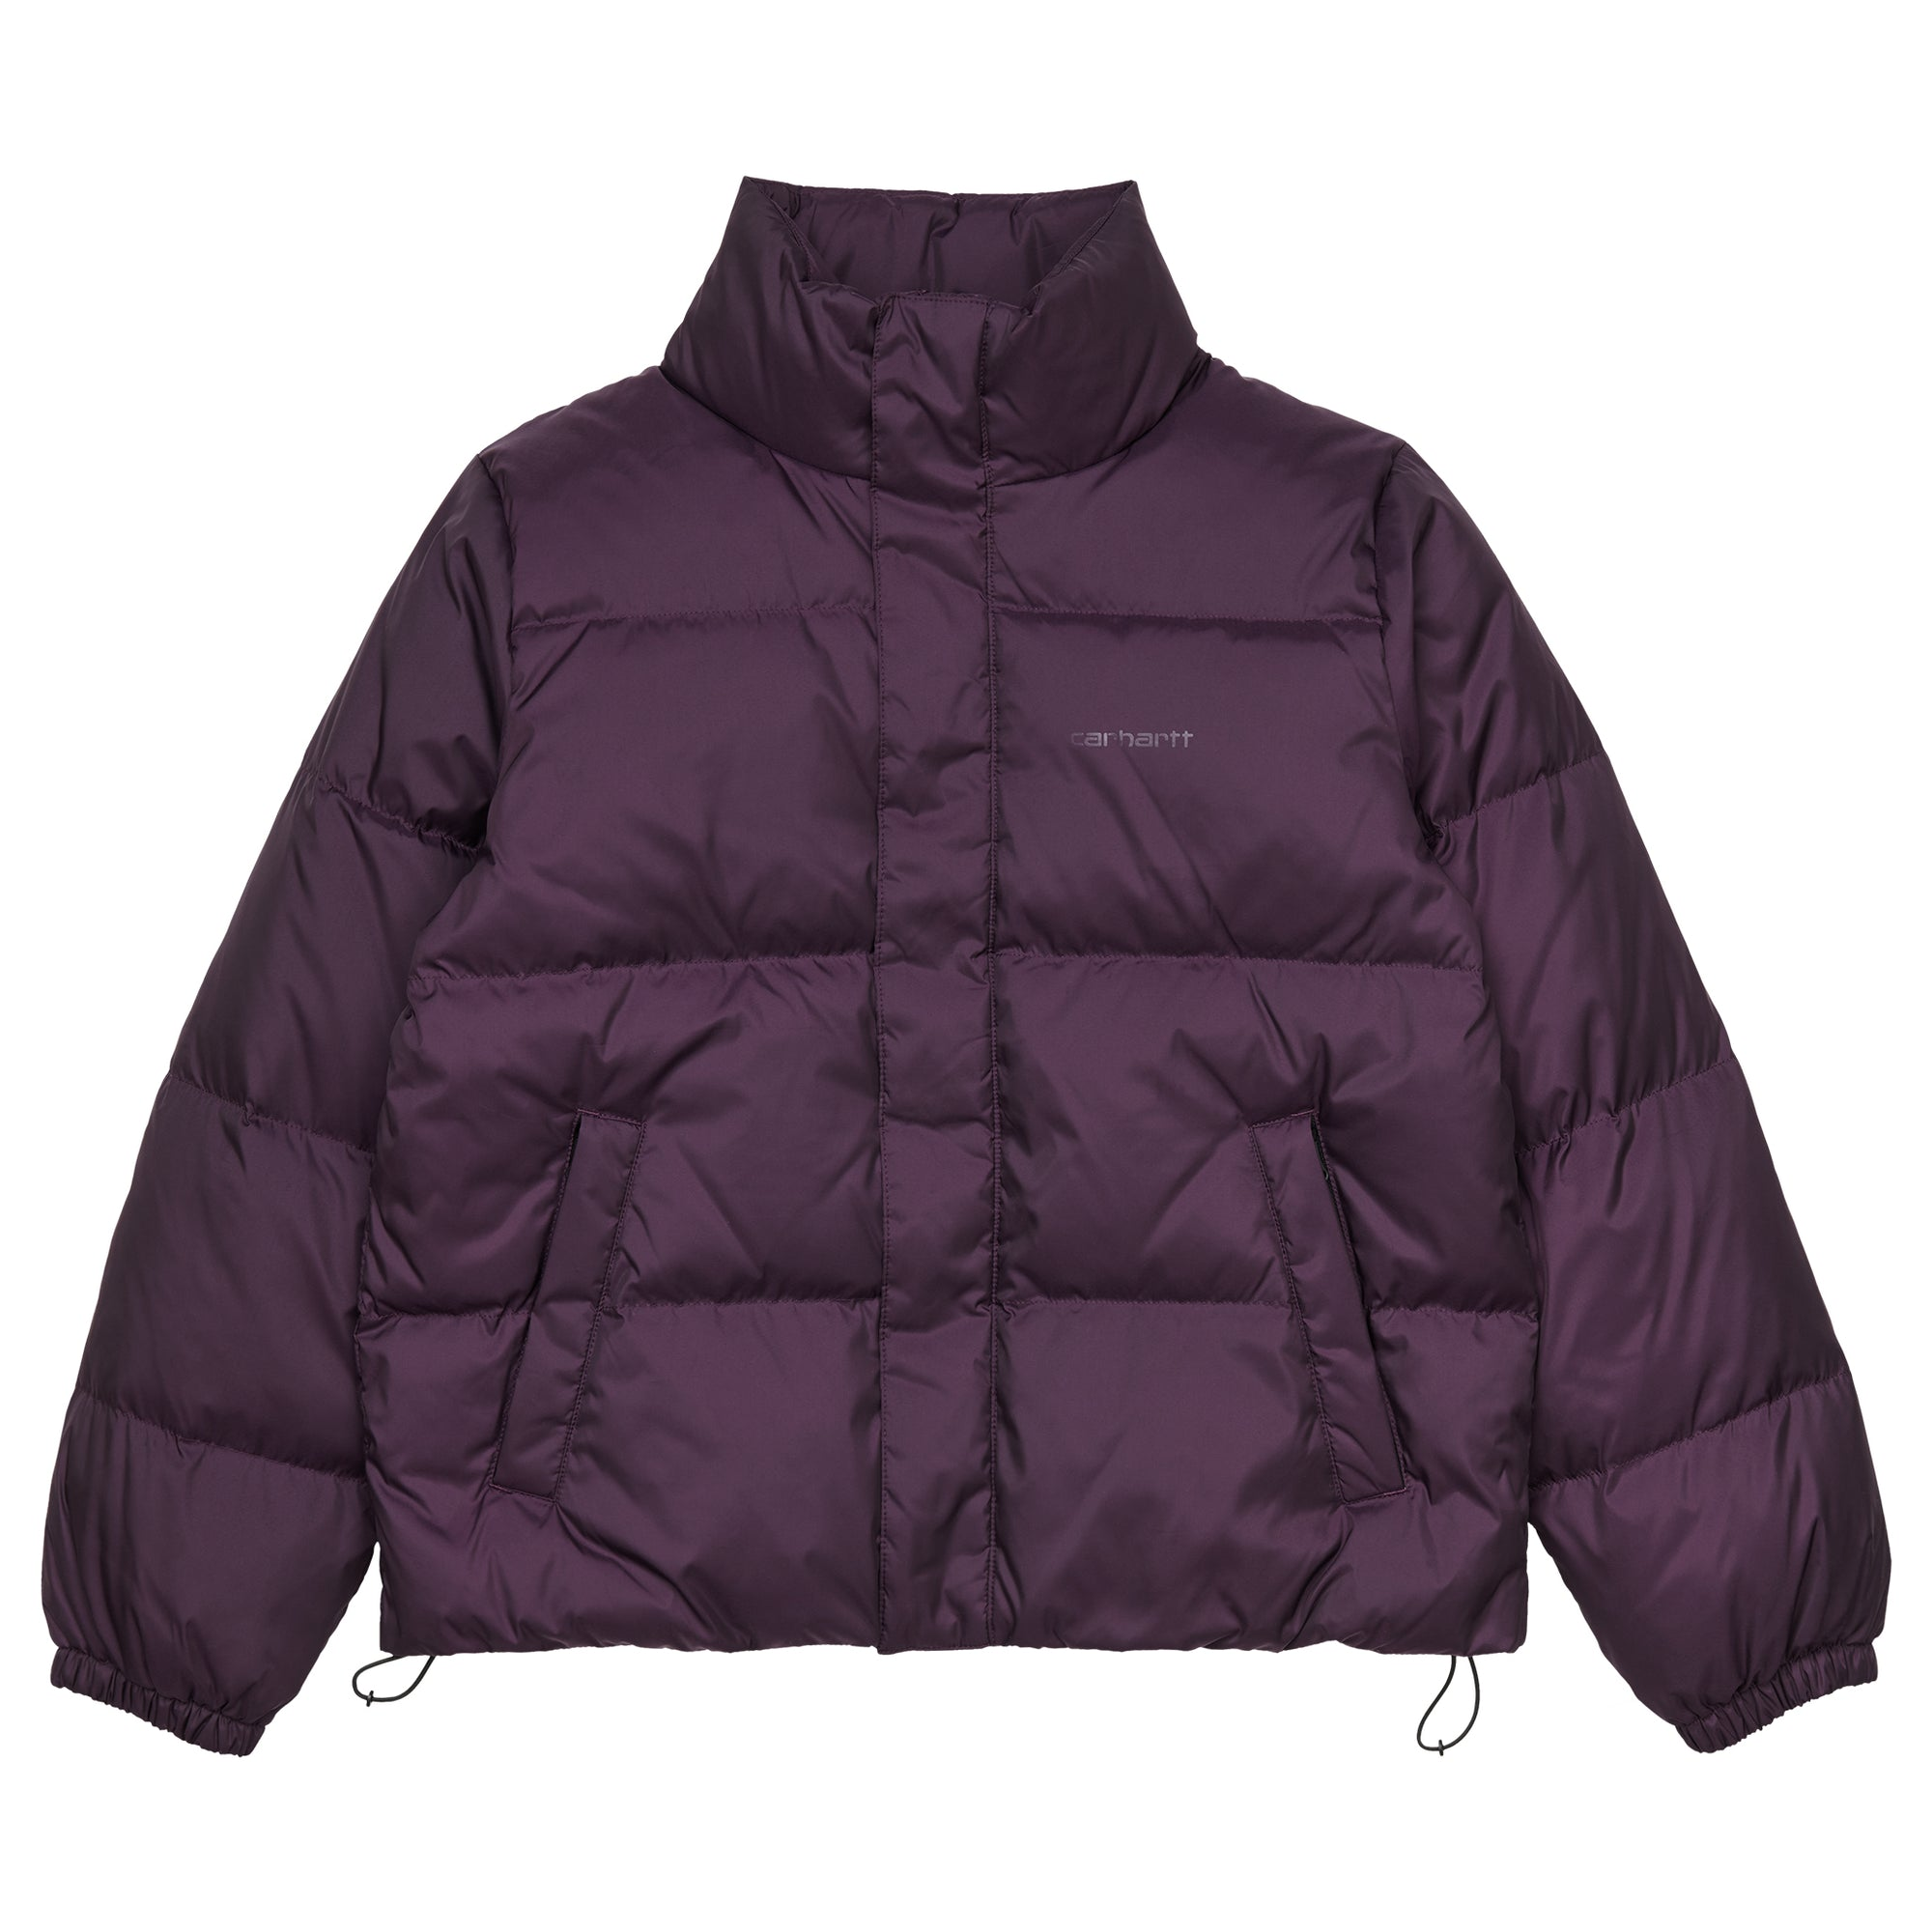 Carhartt WIP Womens Danville Jacket: Boysenberry / Boysenberry - The Union Project